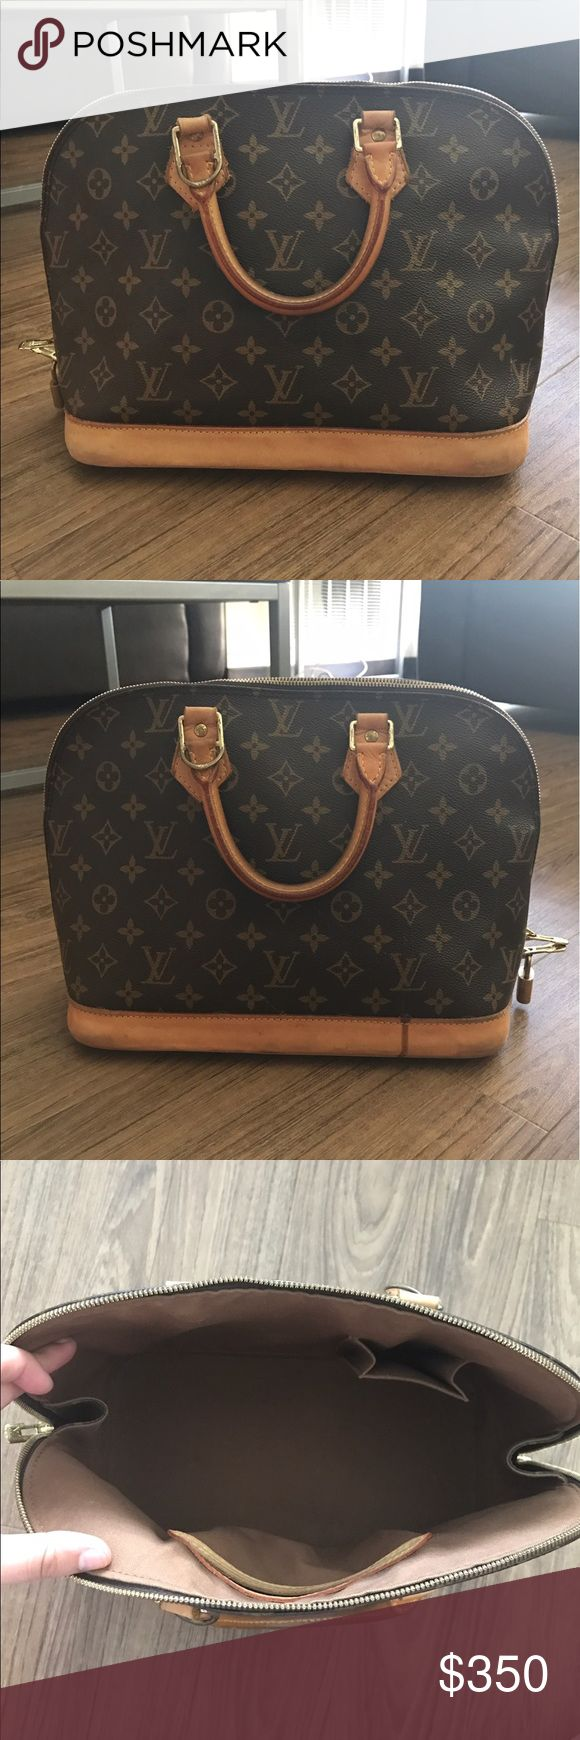 AUTHENTIC Louis Vuitton Alma Bag Great condition classic Alma bag! Inside has no stains. Outside has small water stains on bottom sides and some around the edges. (See pictures) No cracks or wear and tear on the monogram vachetta or handles. All stitching is intact and zippers still work perfectly! Slight tarnish on zippers but padlock will be included. Louis Vuitton Bags Totes